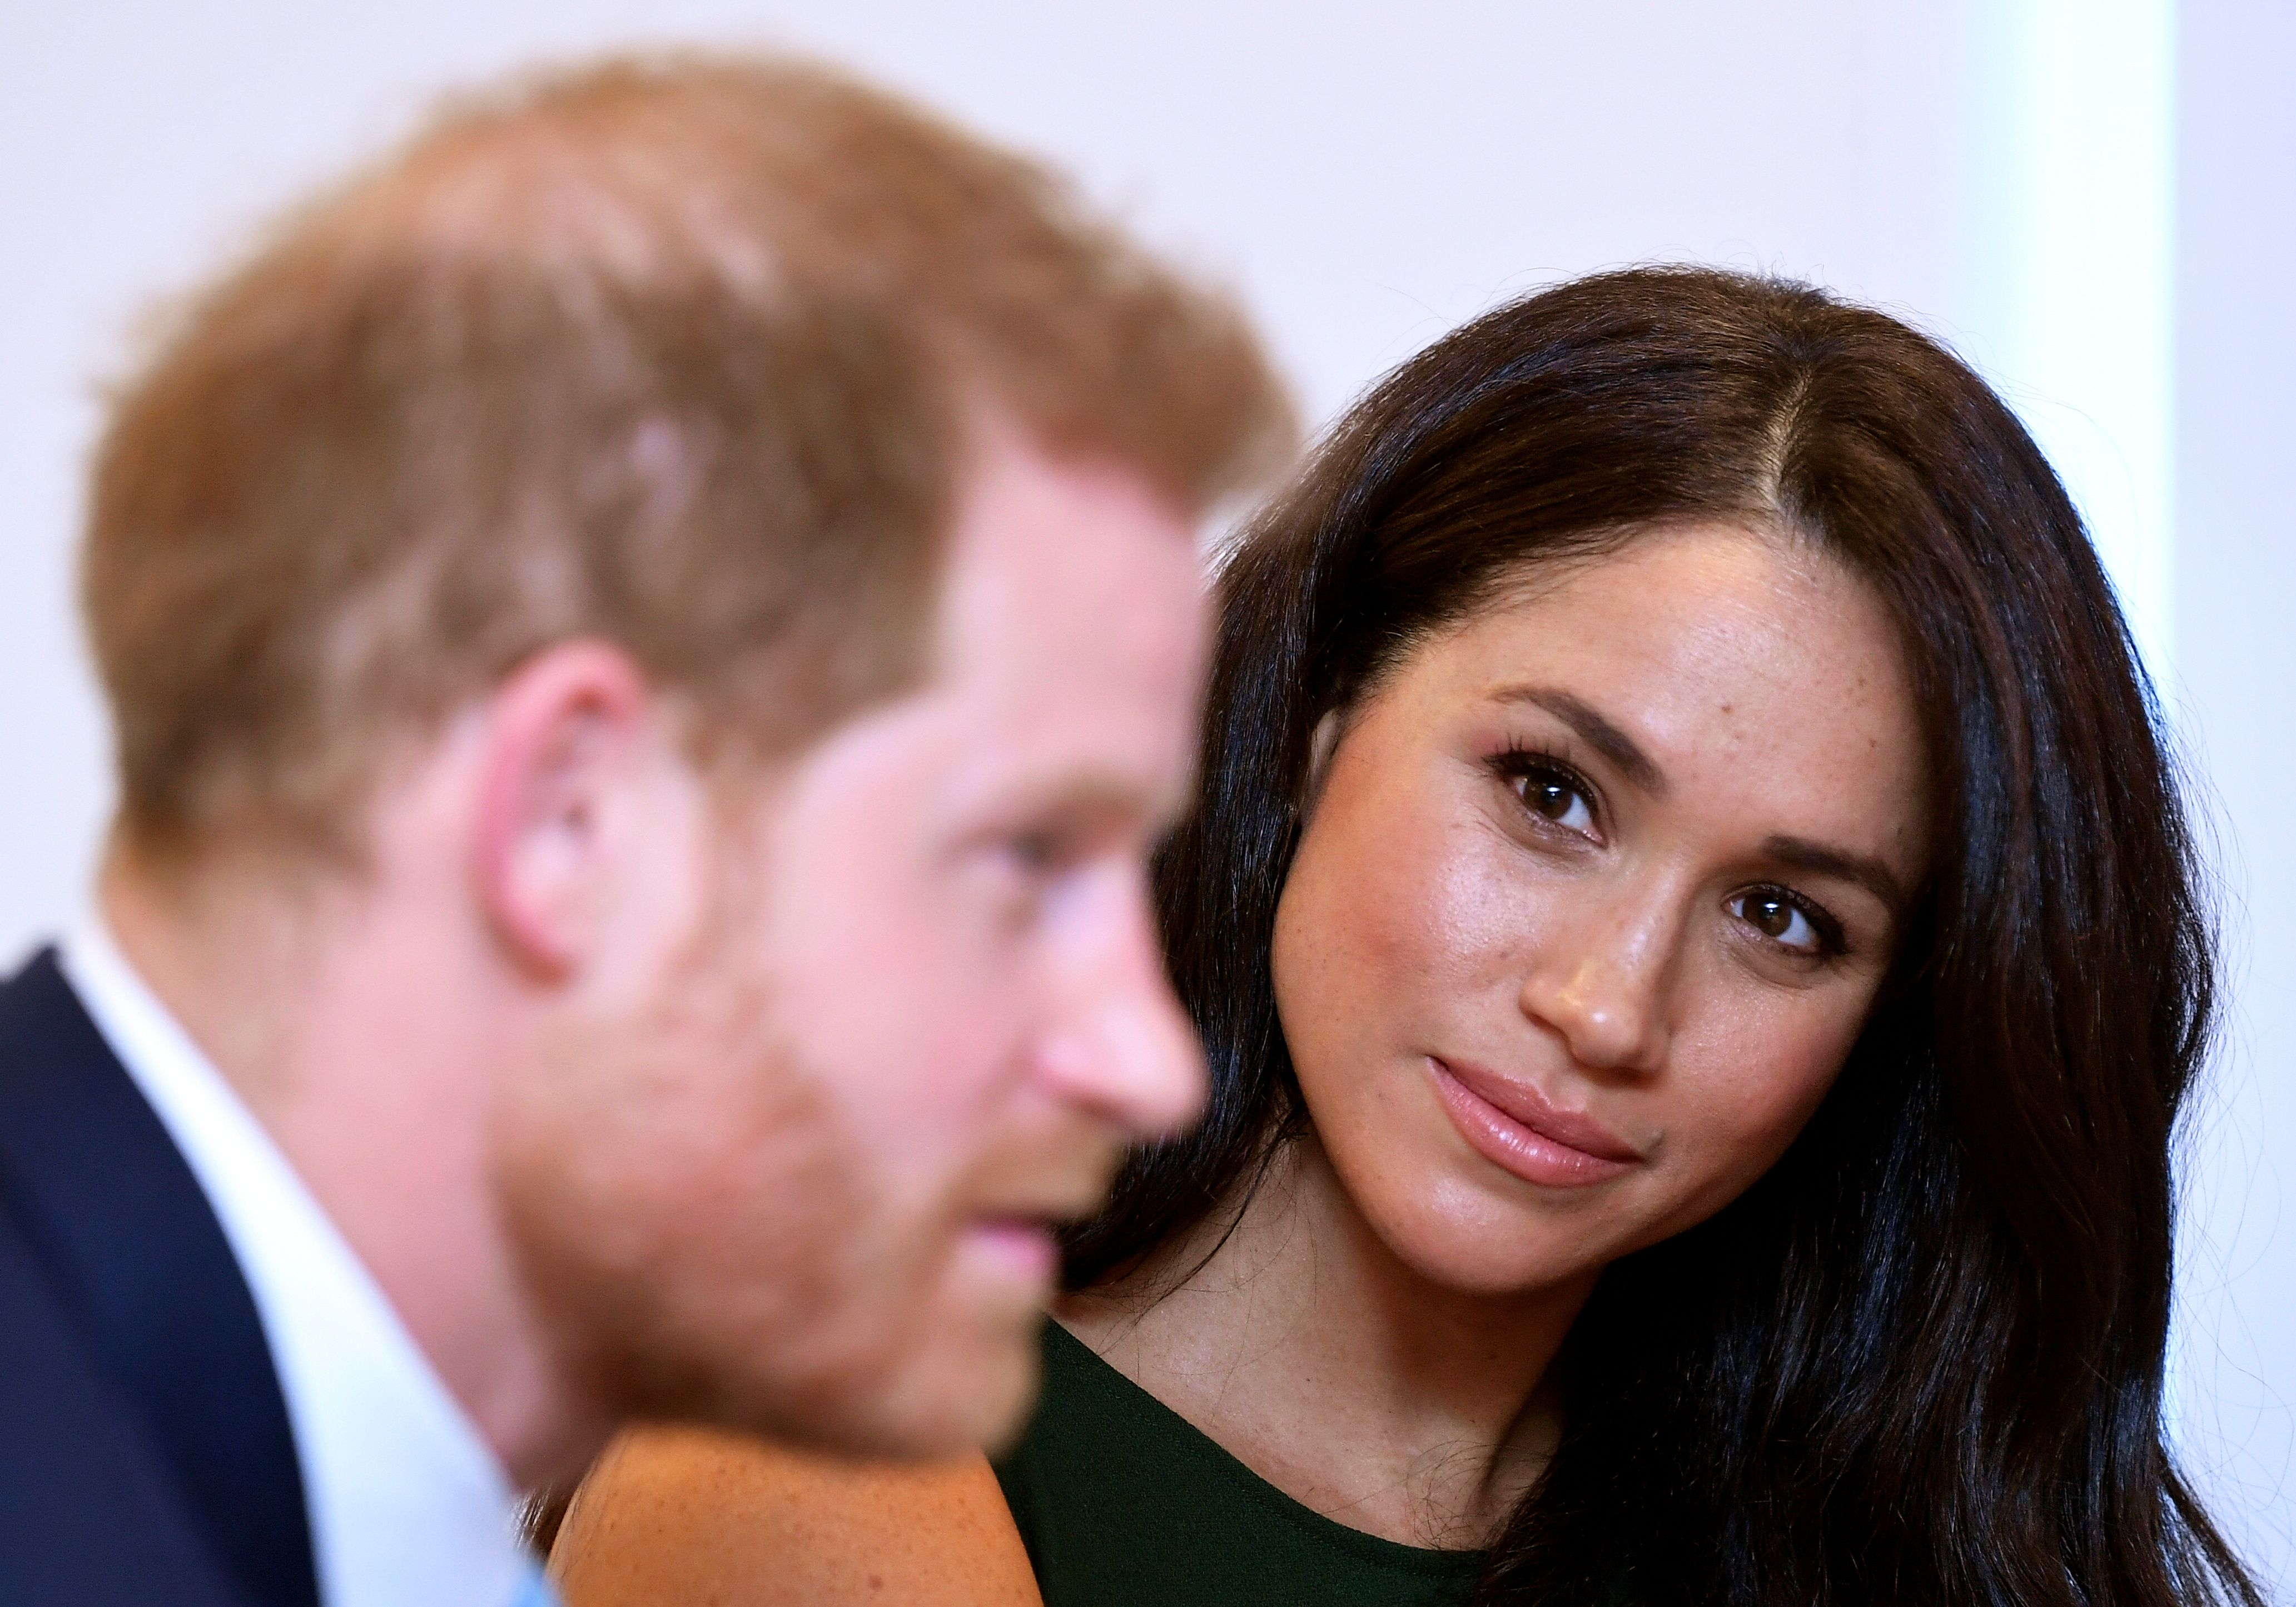 The Duchess of Sussex emotionally opens up about life in the spotlight